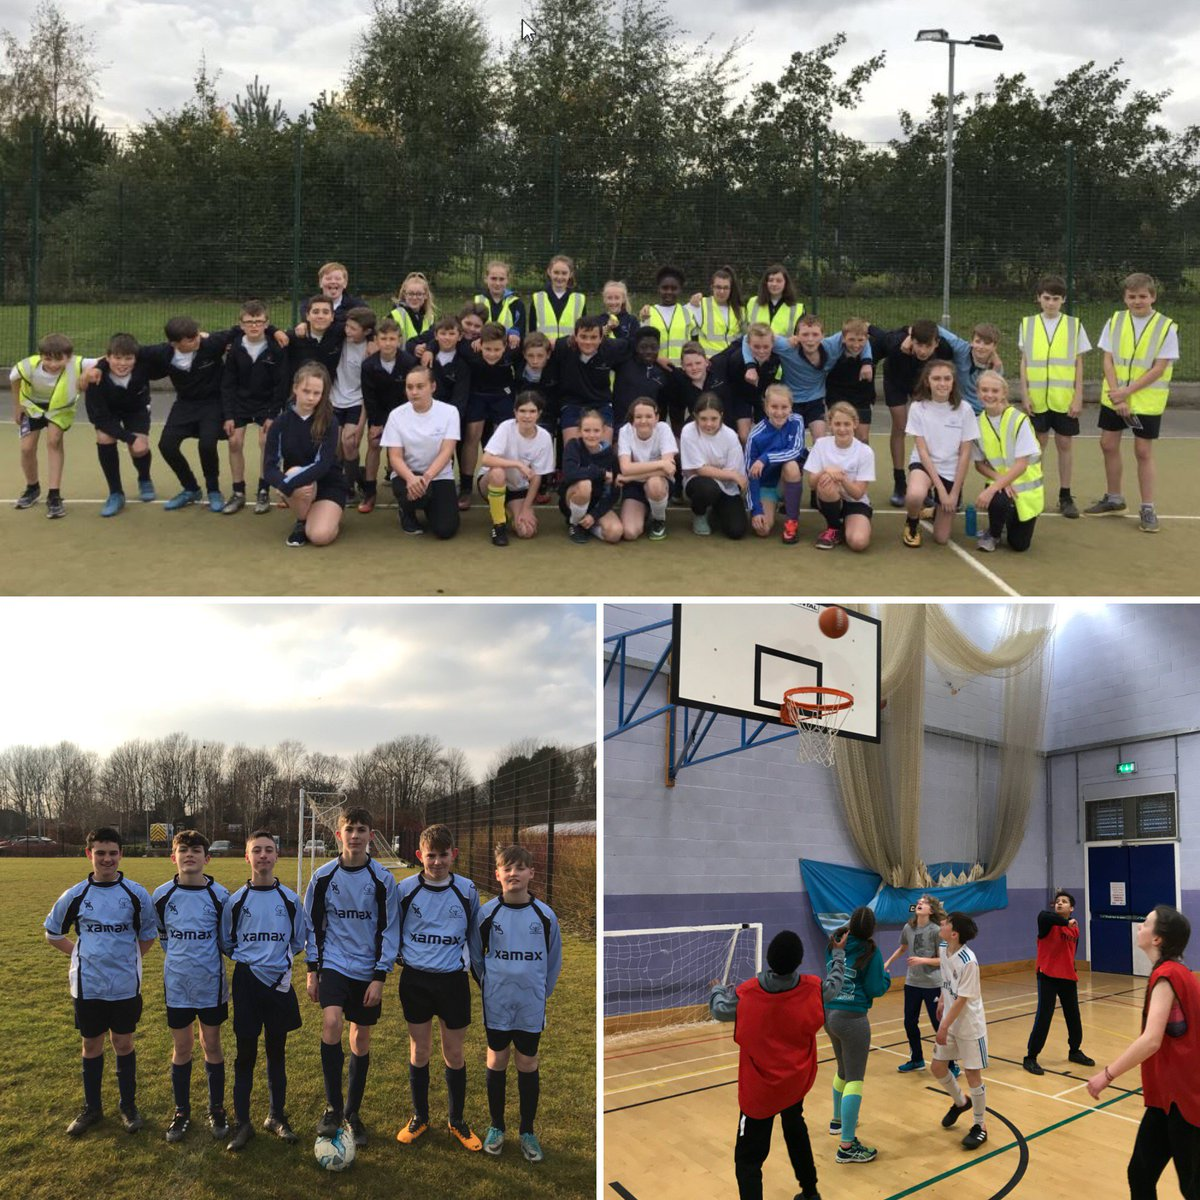 Great turn out for the running, football and basketball extra-curricular clubs tonight. Good luck to the year 8 football team against @AGS95676884